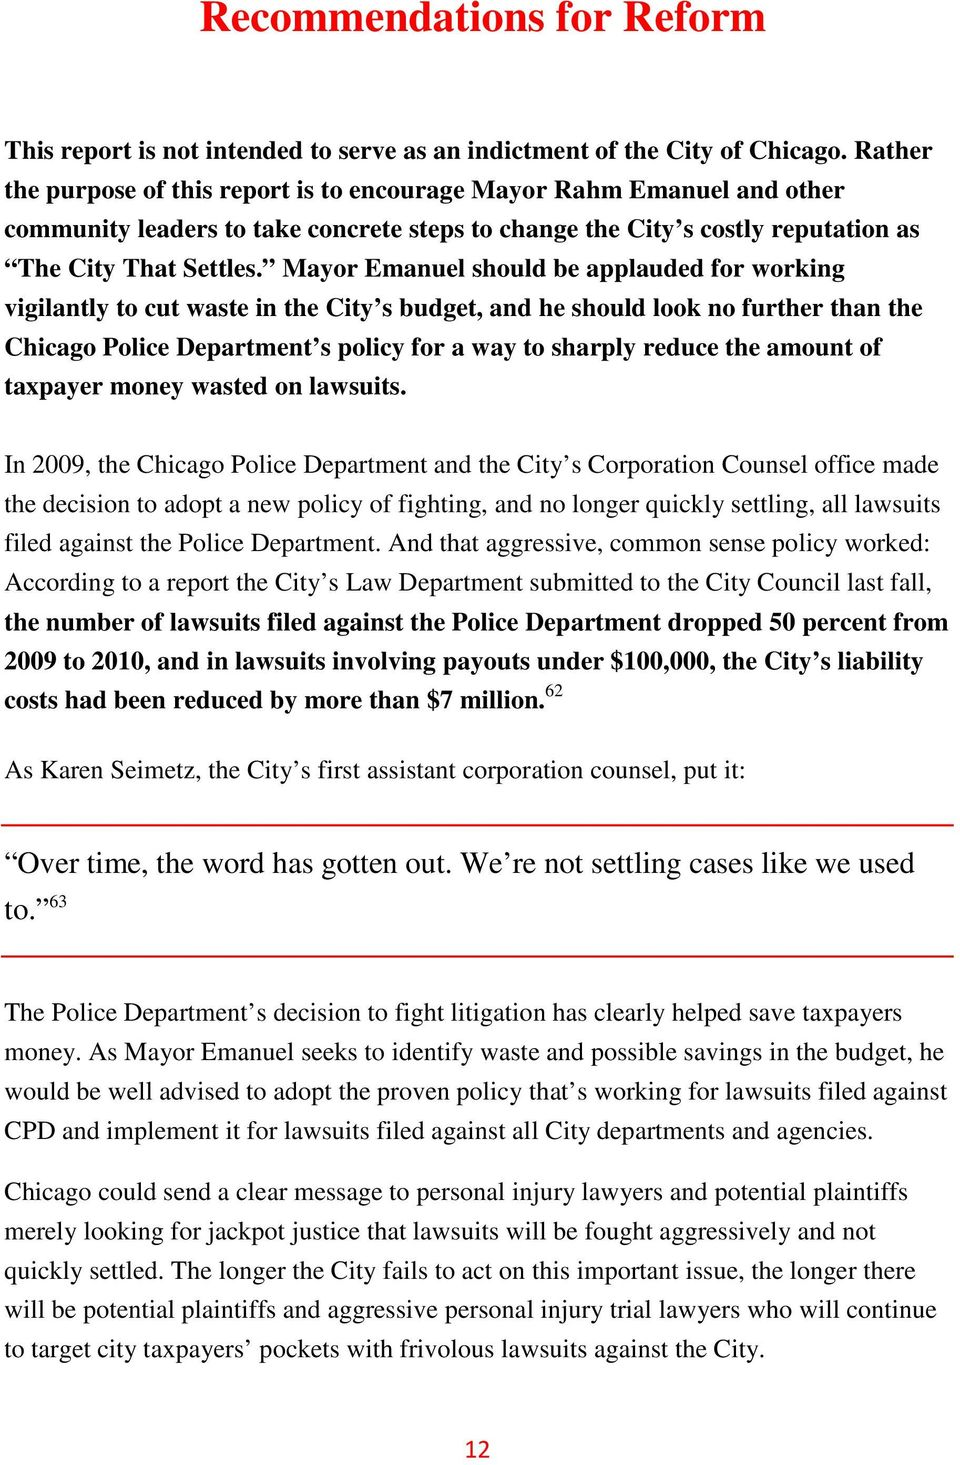 Mayor Emanuel should be applauded for working vigilantly to cut waste in the City s budget, and he should look no further than the Chicago Police Department s policy for a way to sharply reduce the